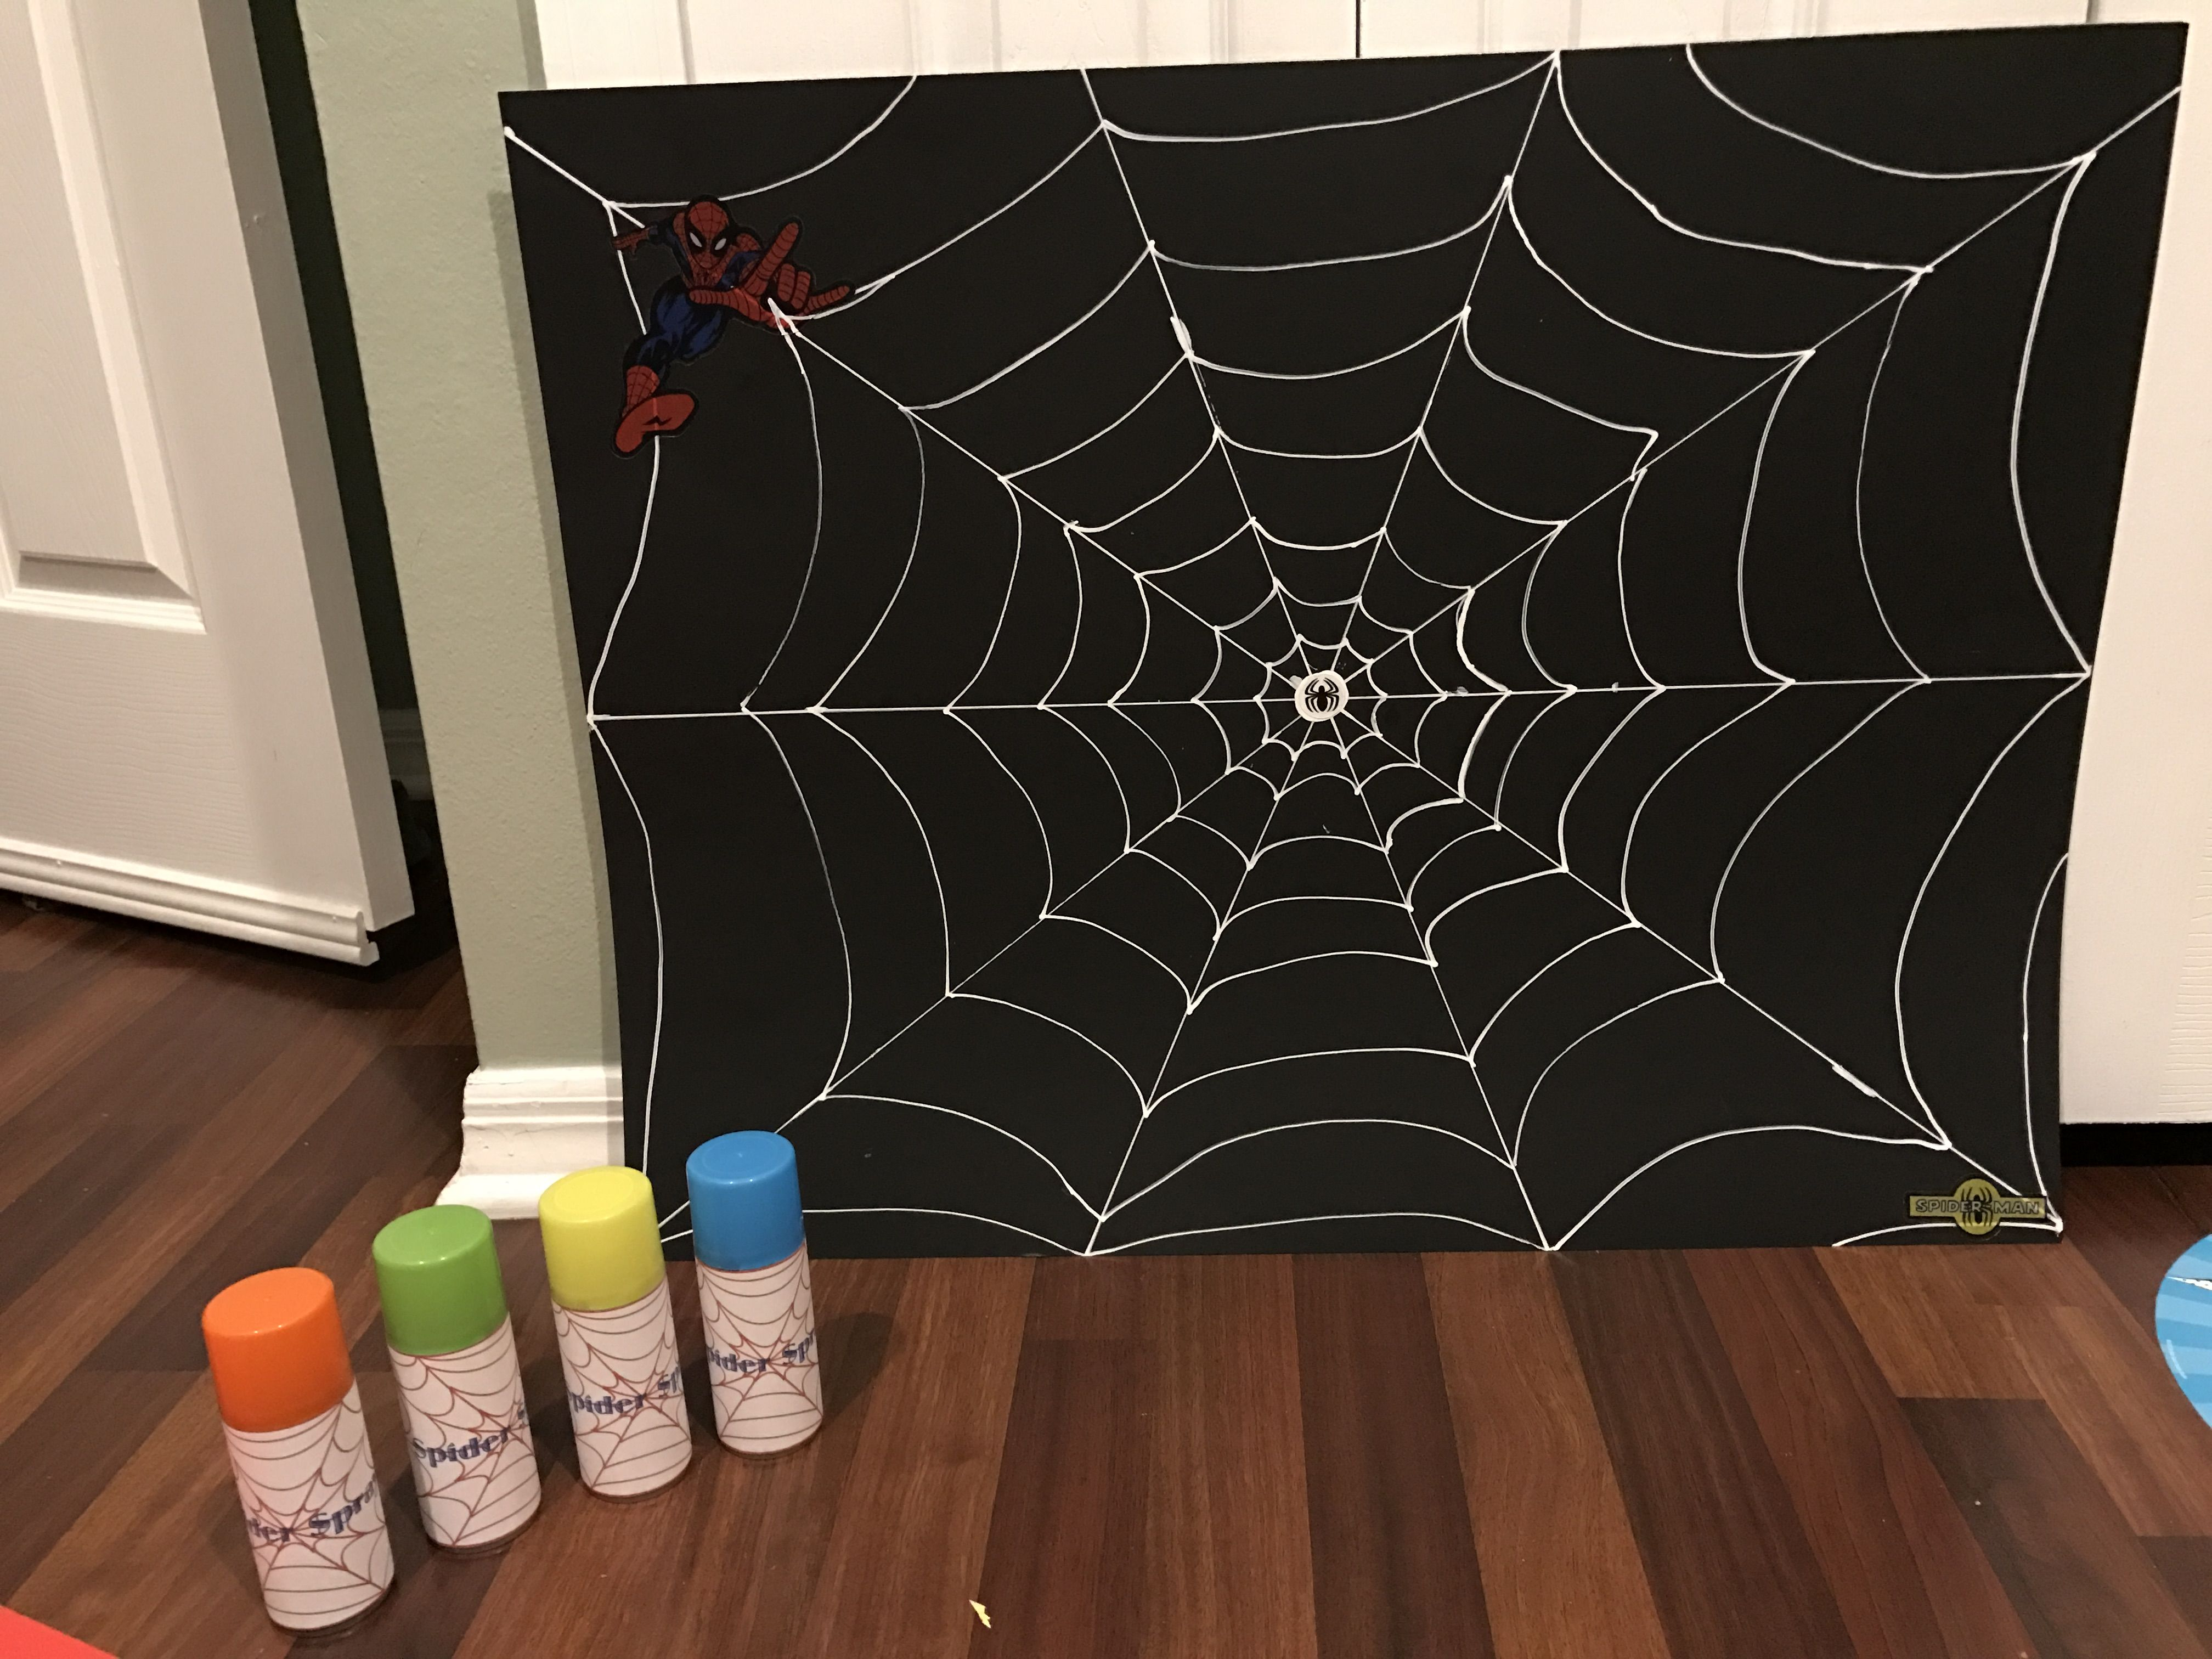 How To Make A Giant Spider Web Black Poster Board And White Out Pen To Make Web With Spider Man